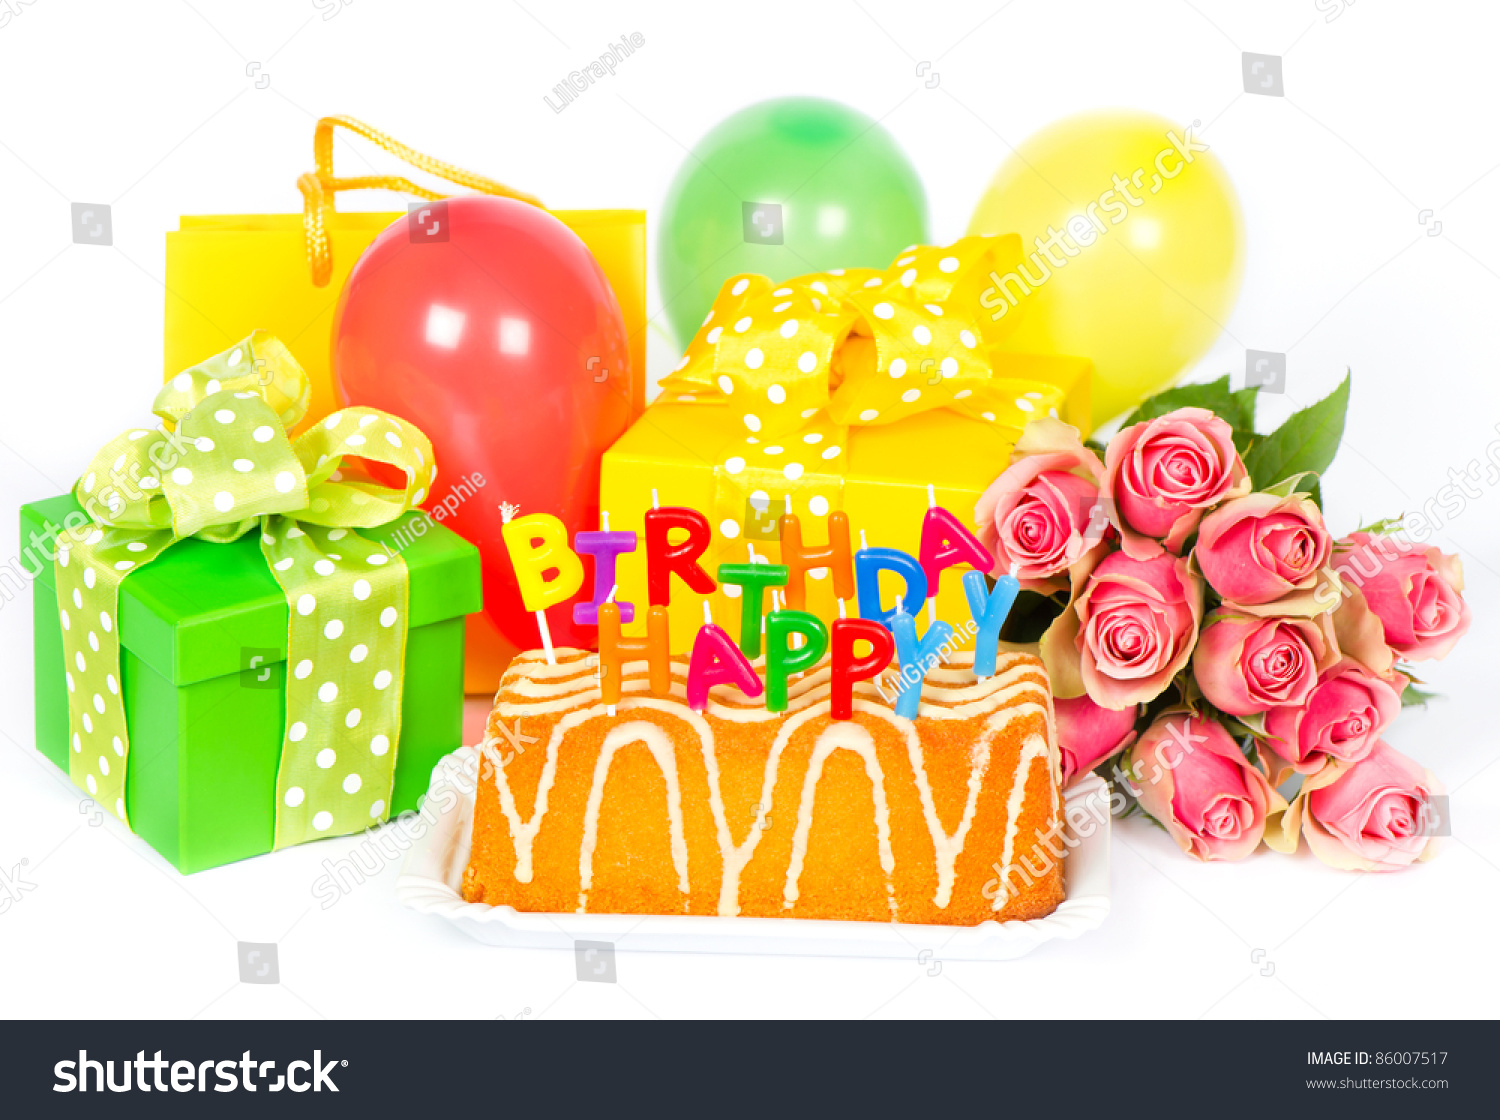 Birthday party decoration roses flowers cake stock photo edit now birthday party decoration with roses flowers cake balloons gifts and candles card izmirmasajfo